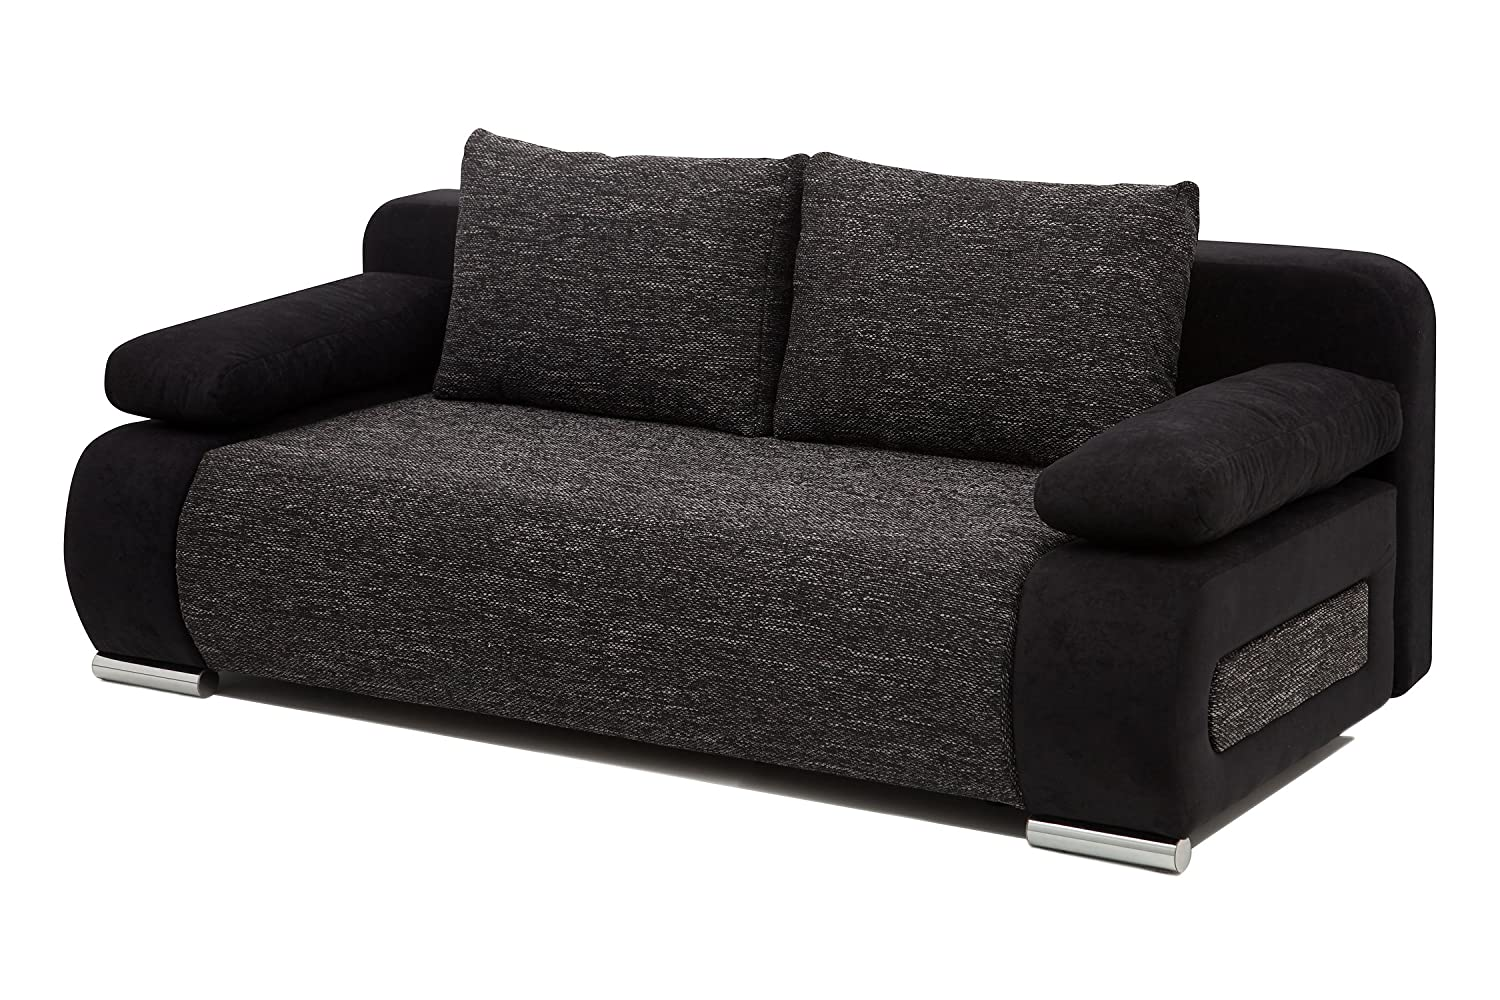 schlafsofa mit federkern bestseller shop f r m bel und. Black Bedroom Furniture Sets. Home Design Ideas